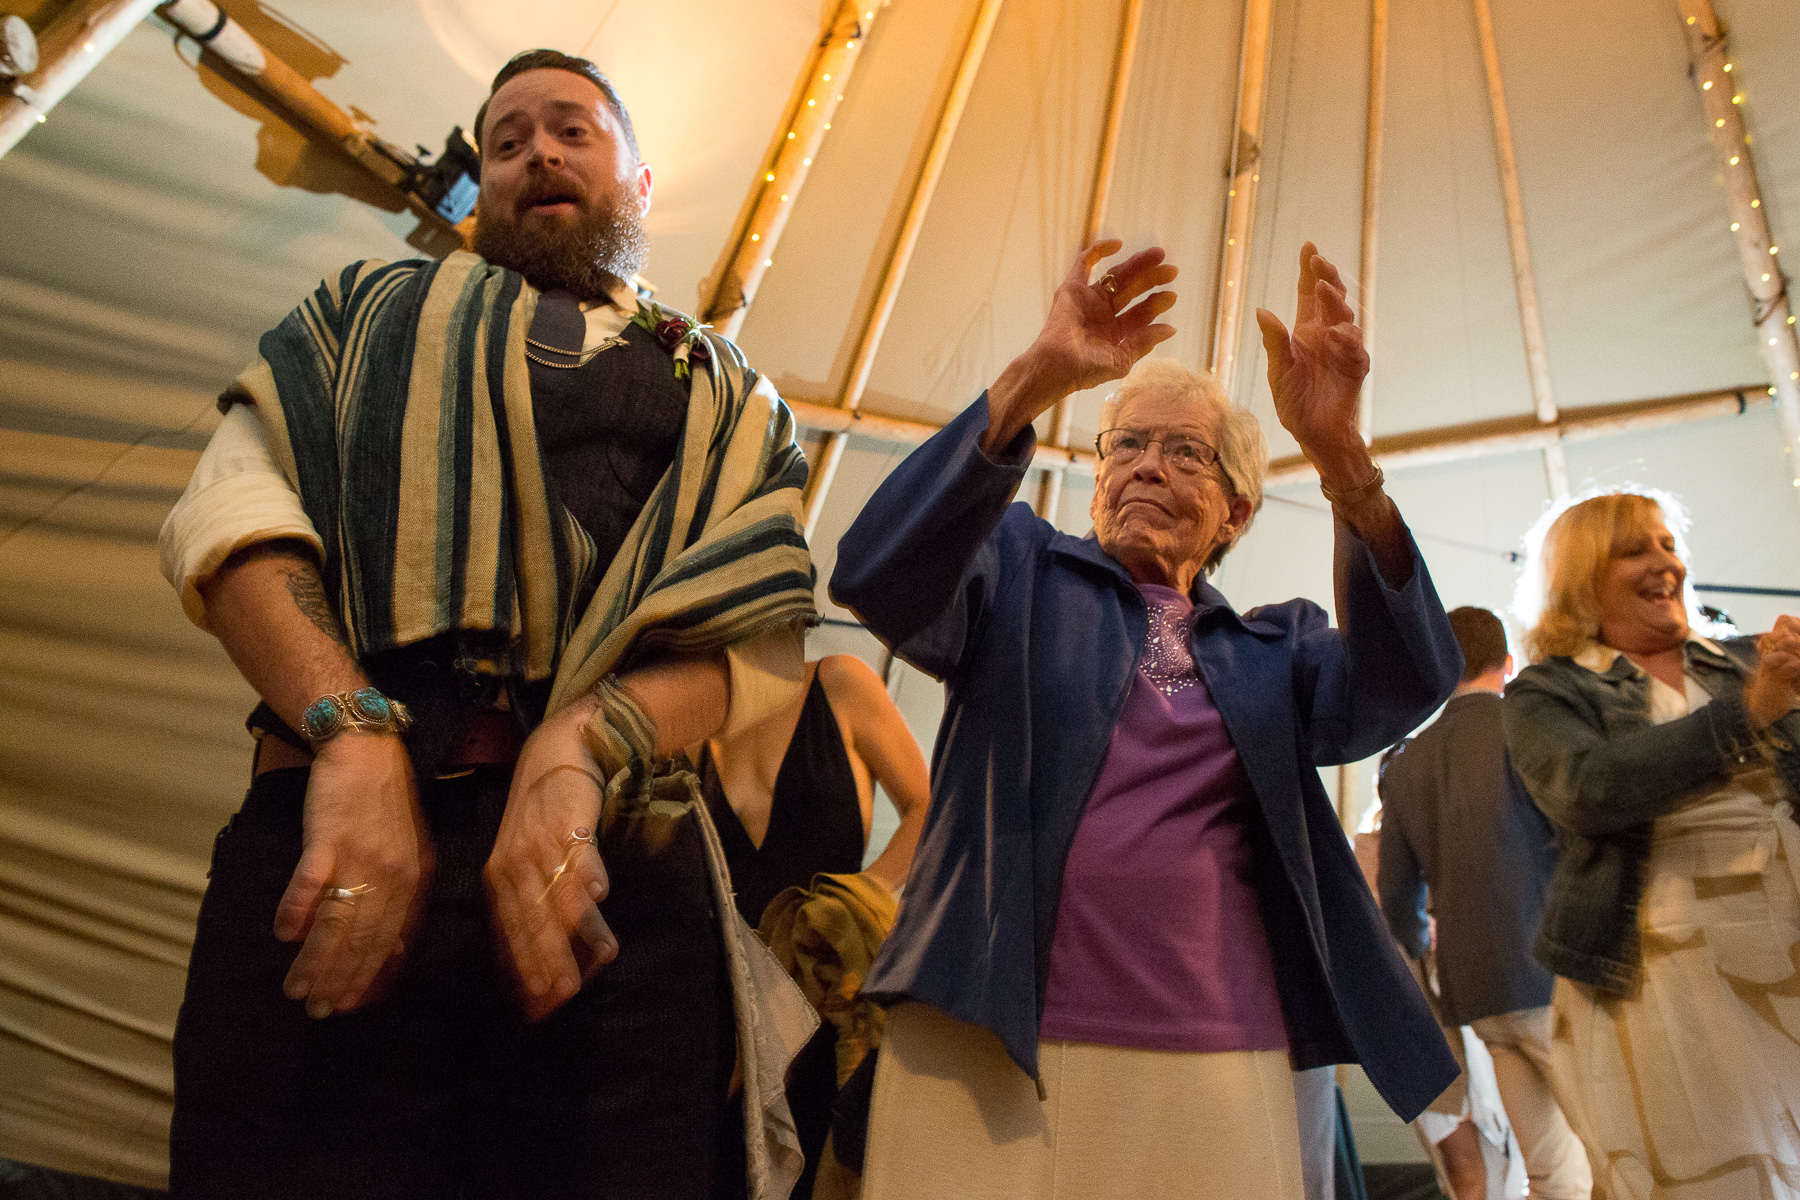 a groom and a grandmother dancing with their hands opposite each other